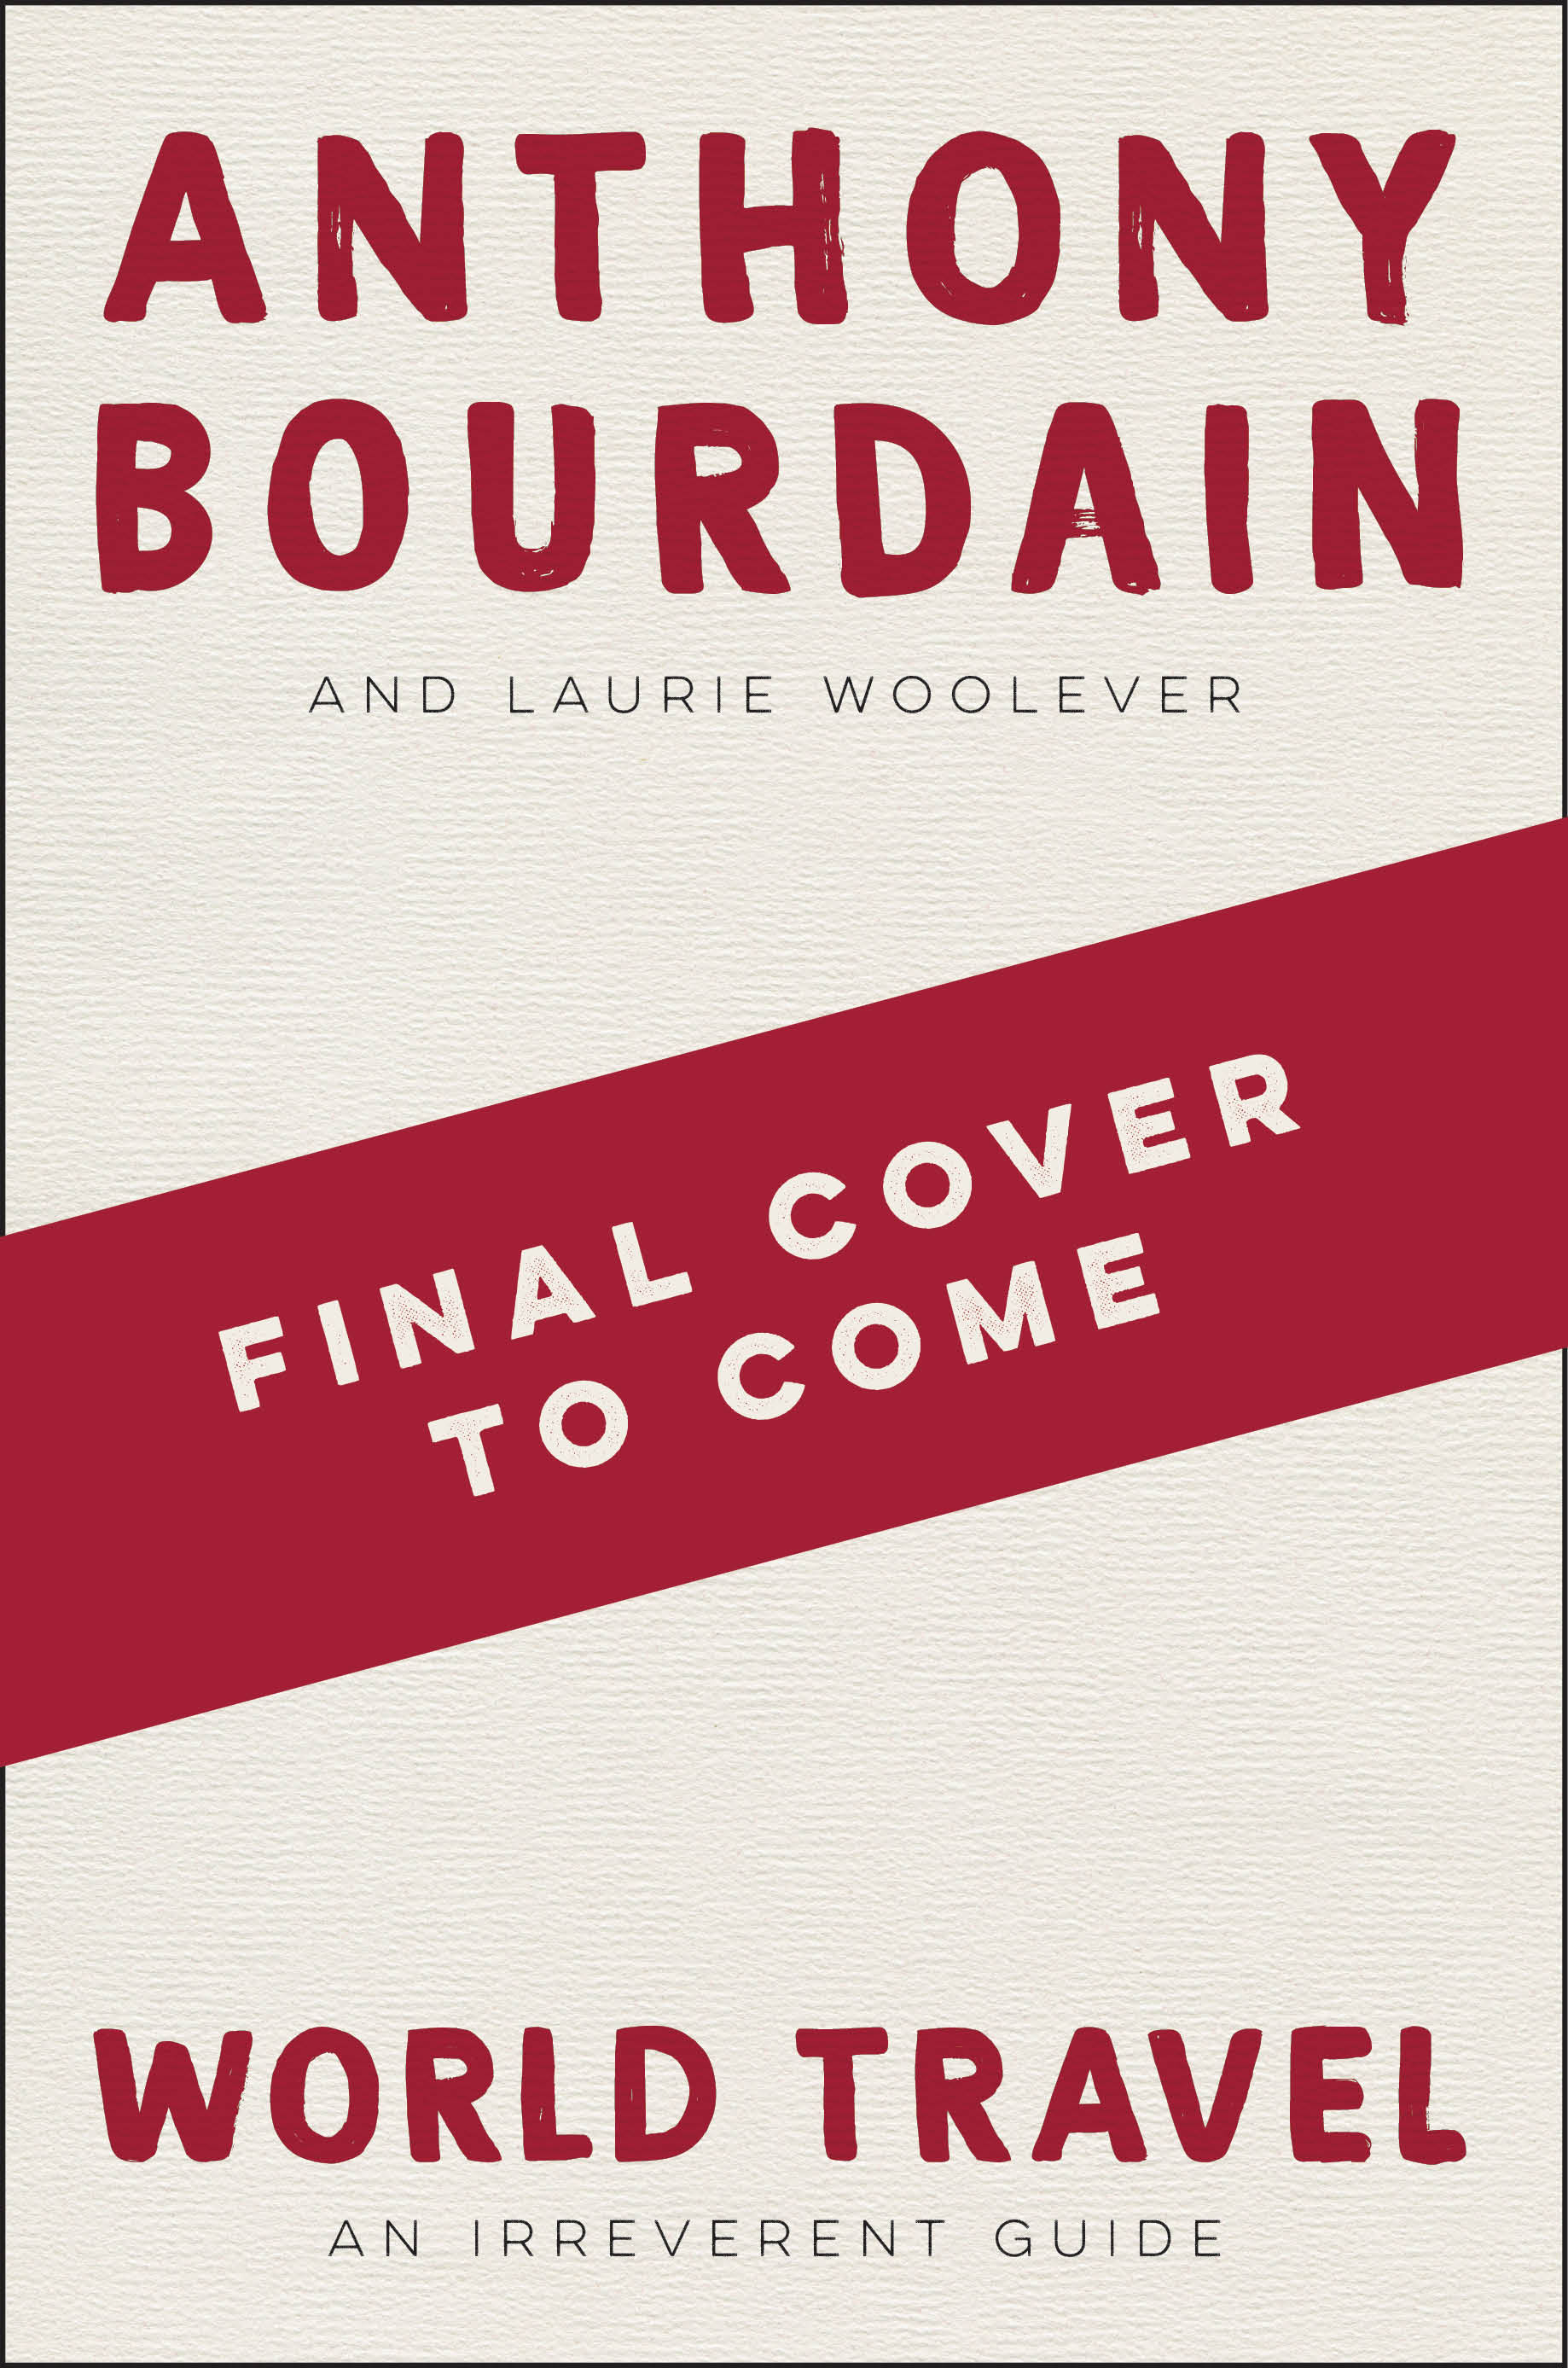 World Travel An Irreverent GuidebyAnthony BourdainLaurie Woolever